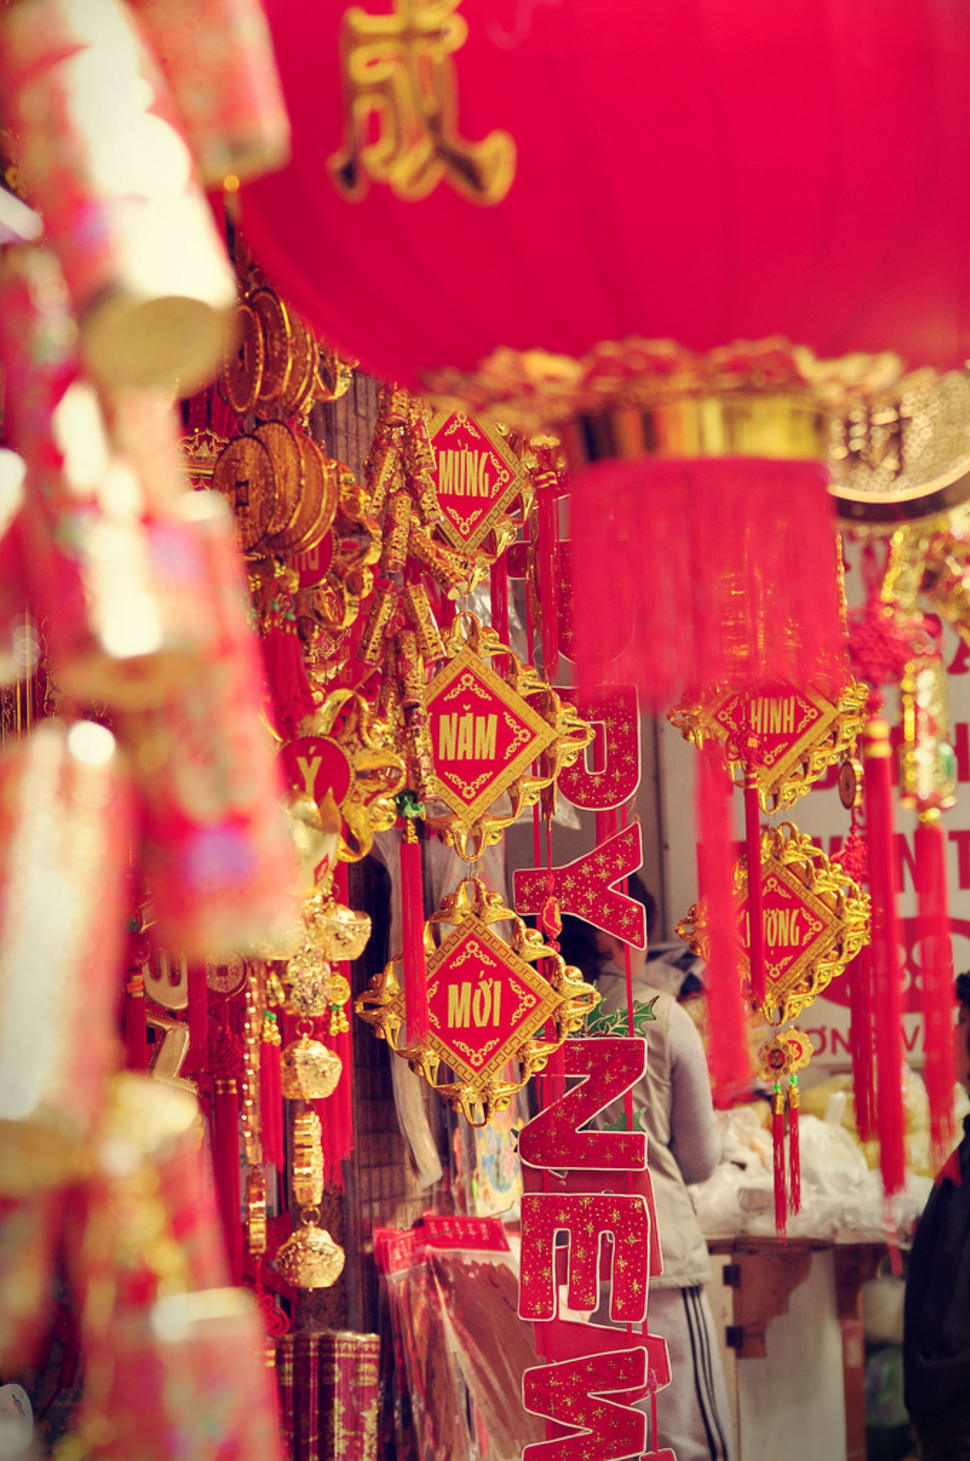 Best time for Tet or Lunar New Year in Vietnam